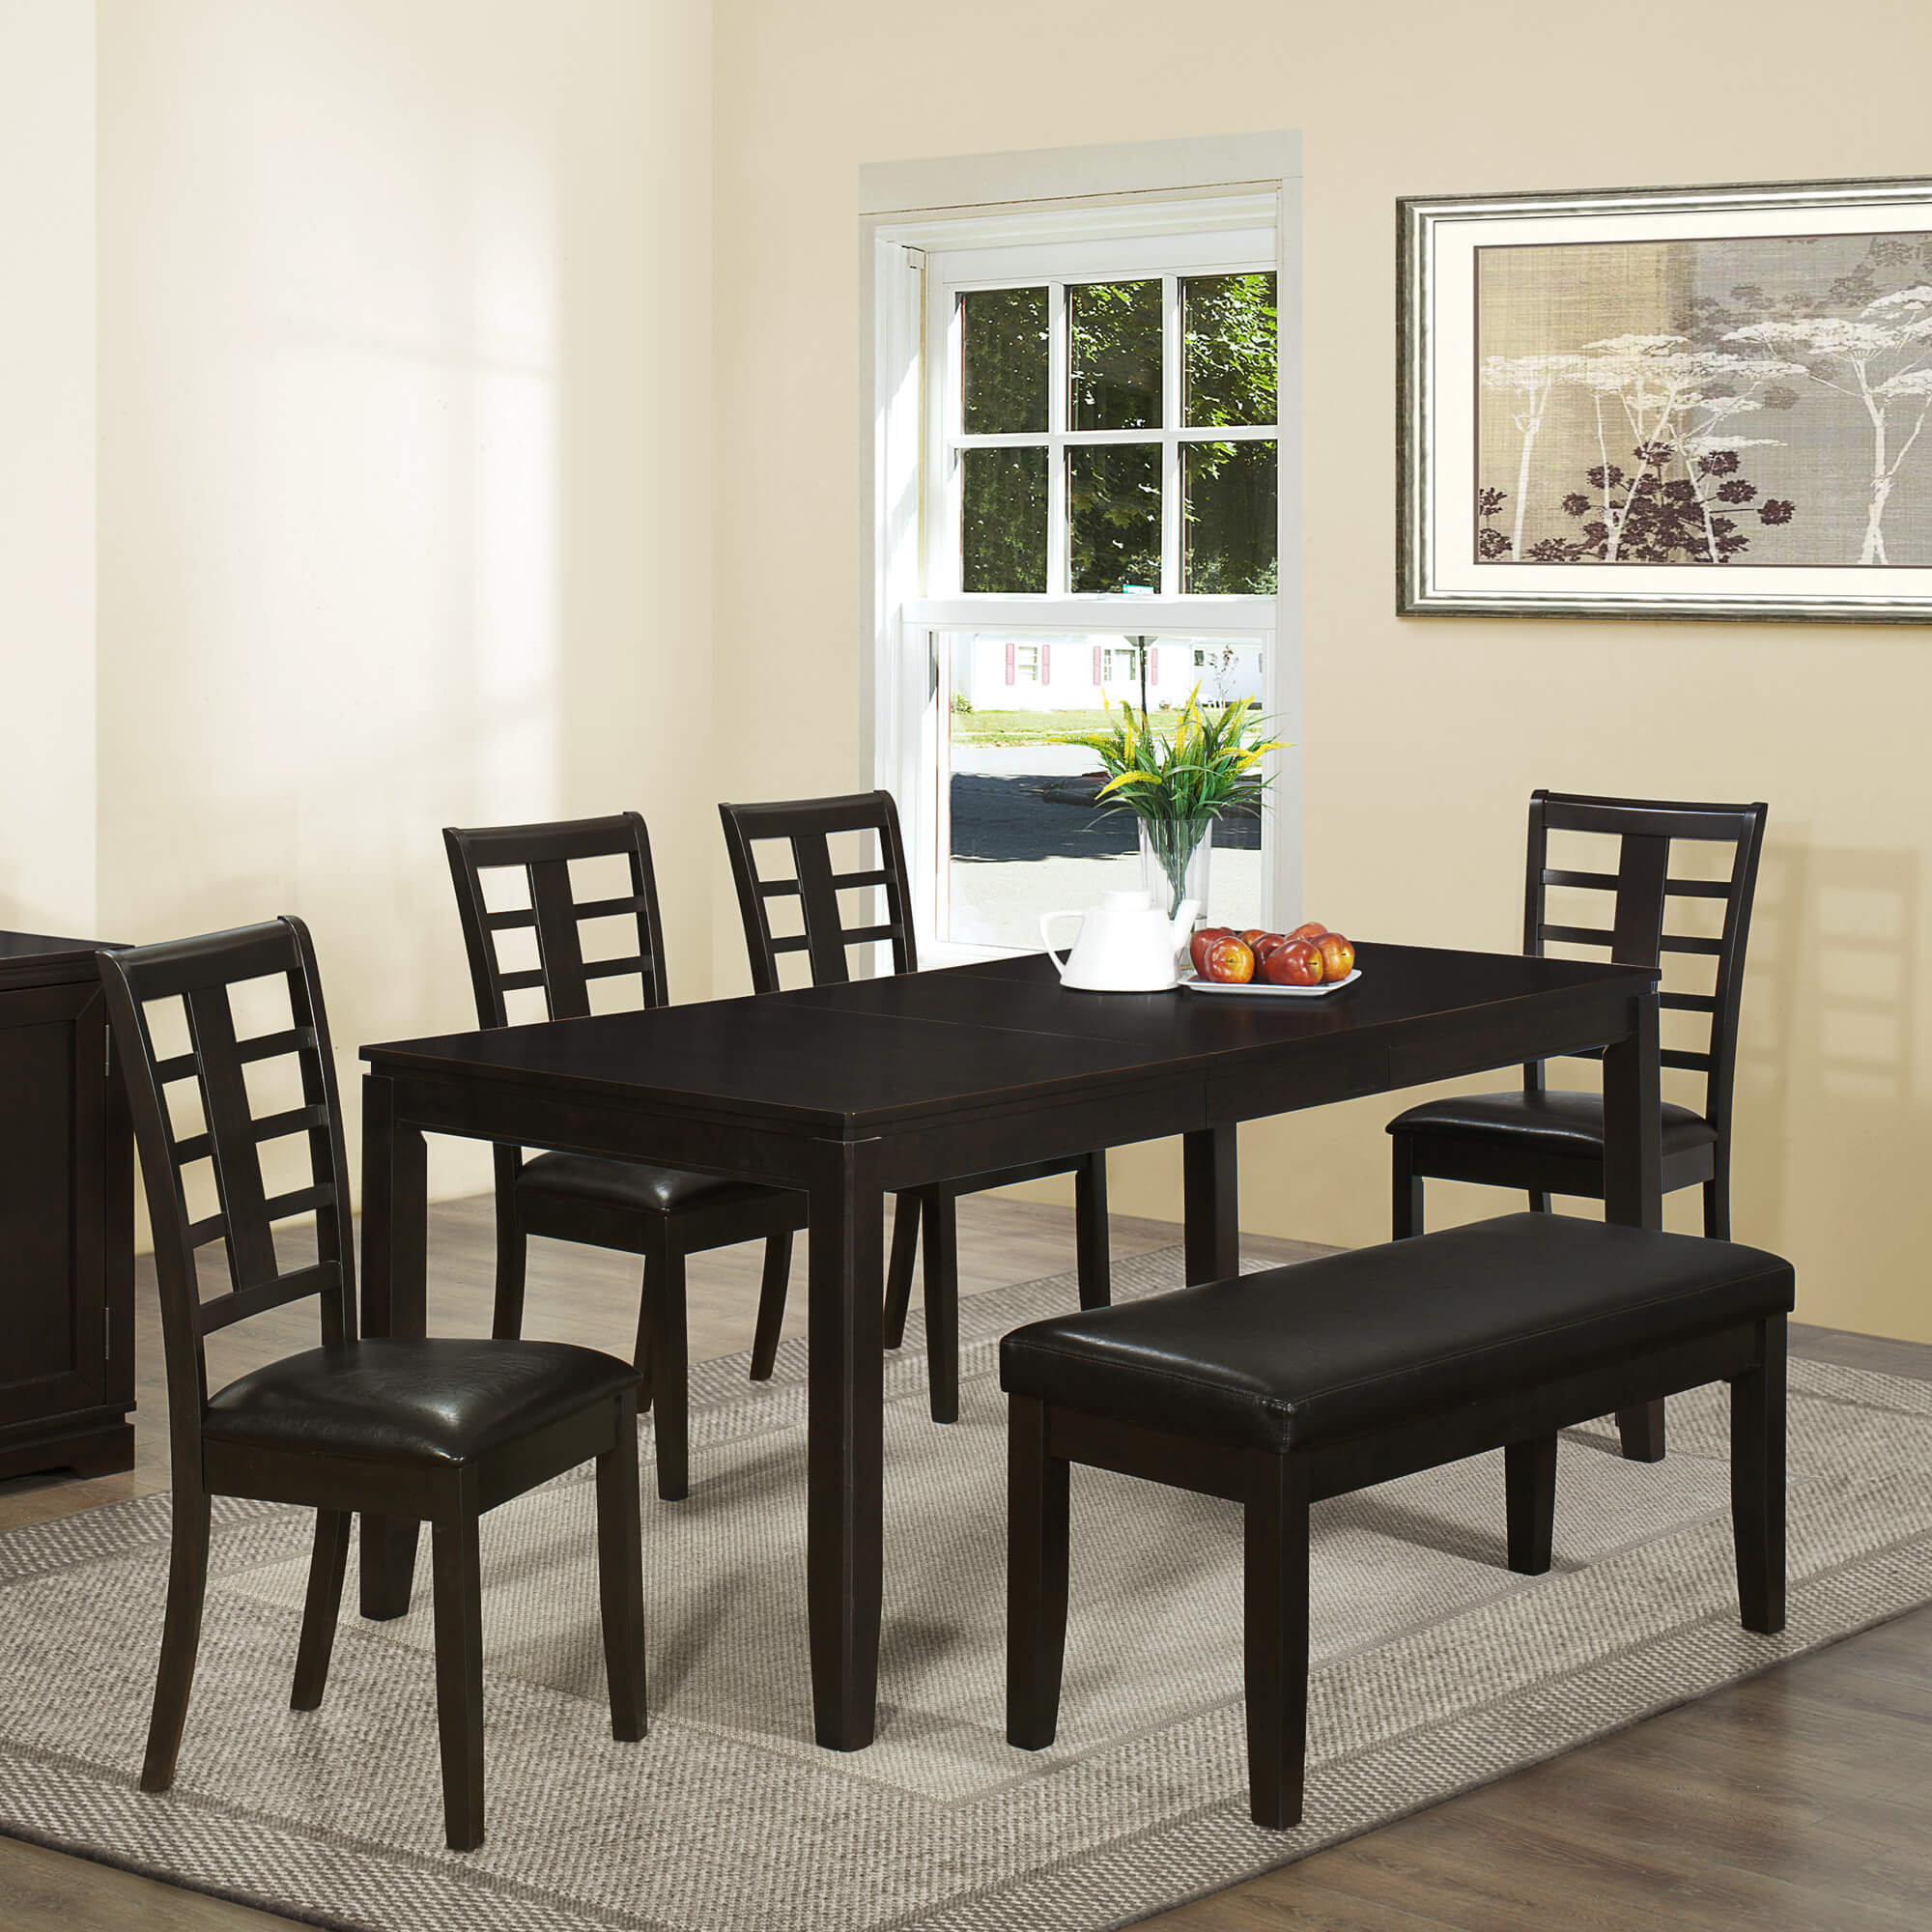 26 big small dining room sets with bench seating for Small dining room furniture